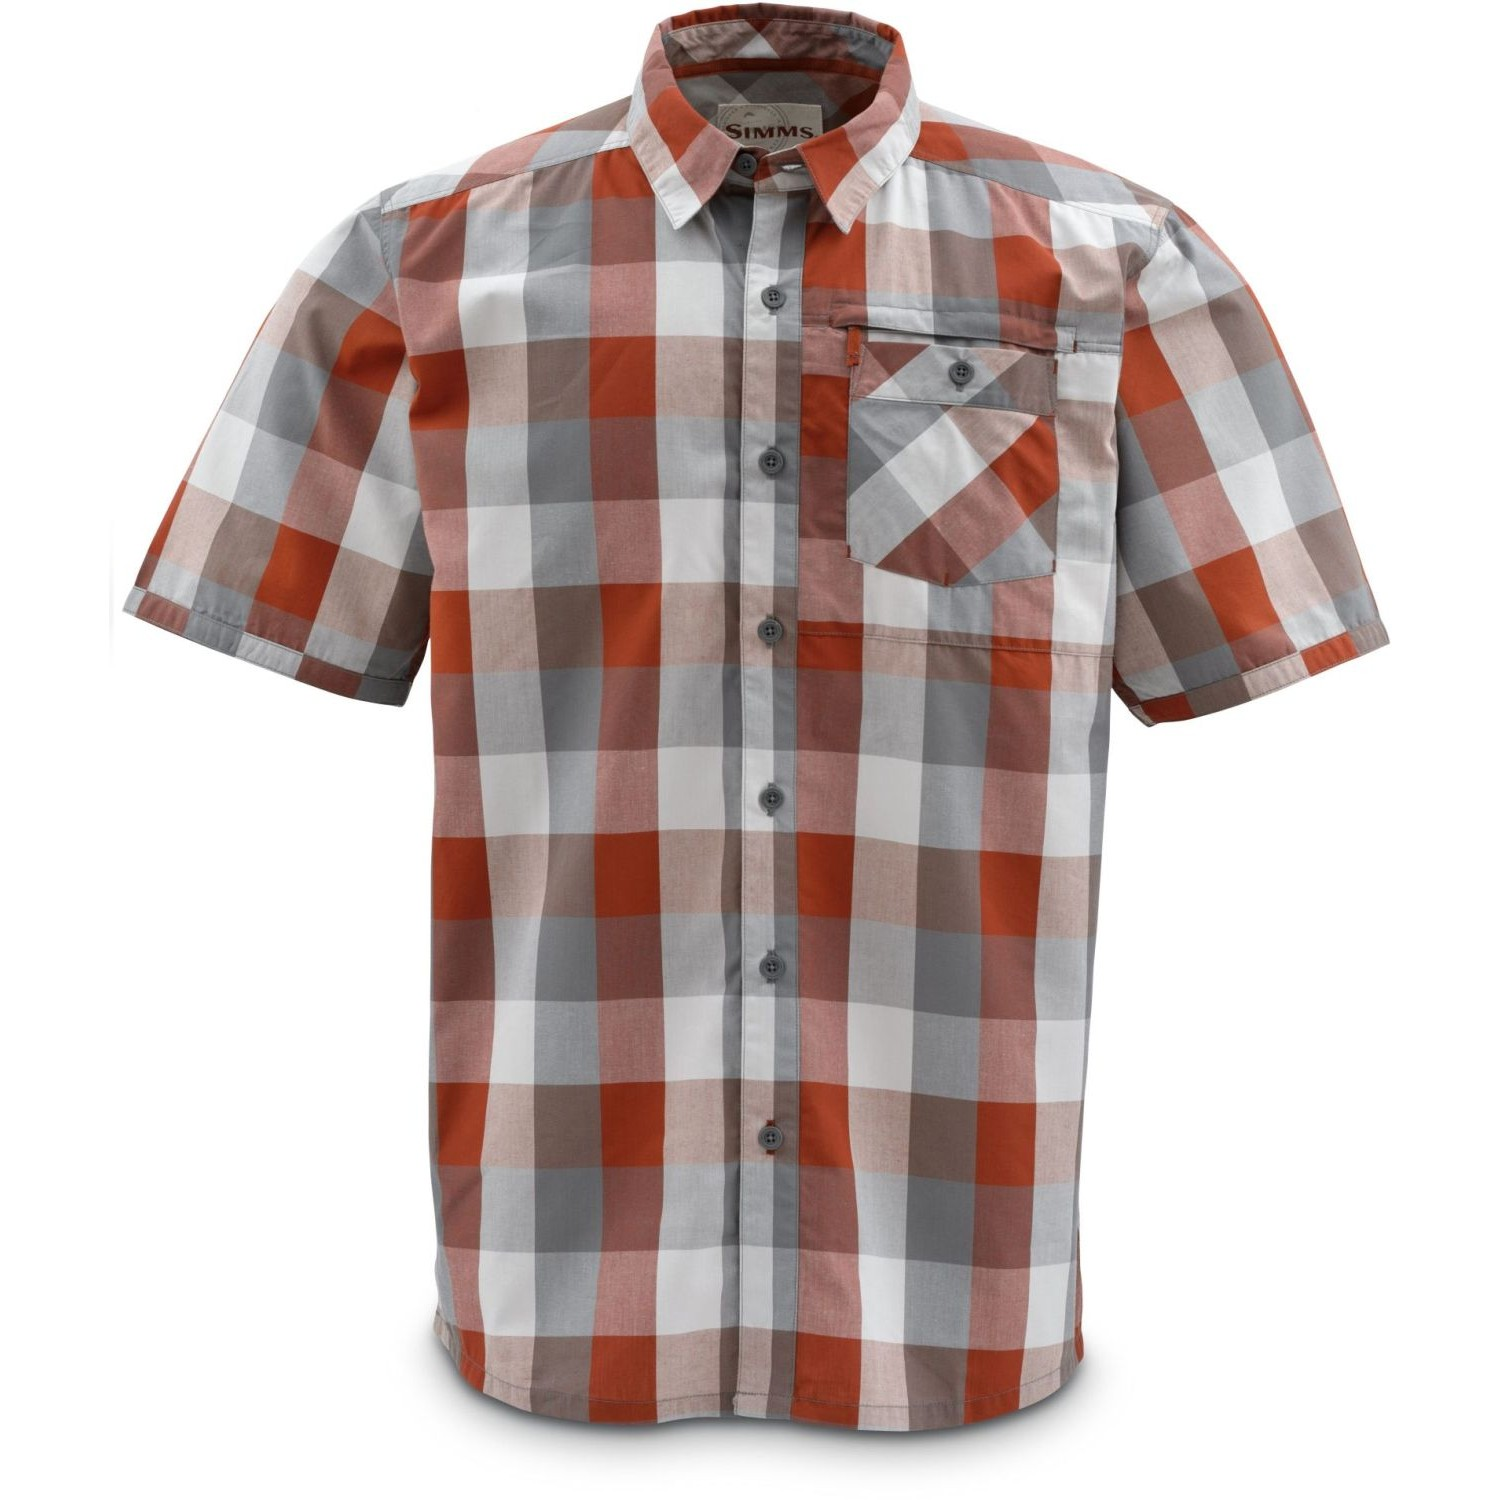 Simms Espirito Shirt Orange Block Plaid